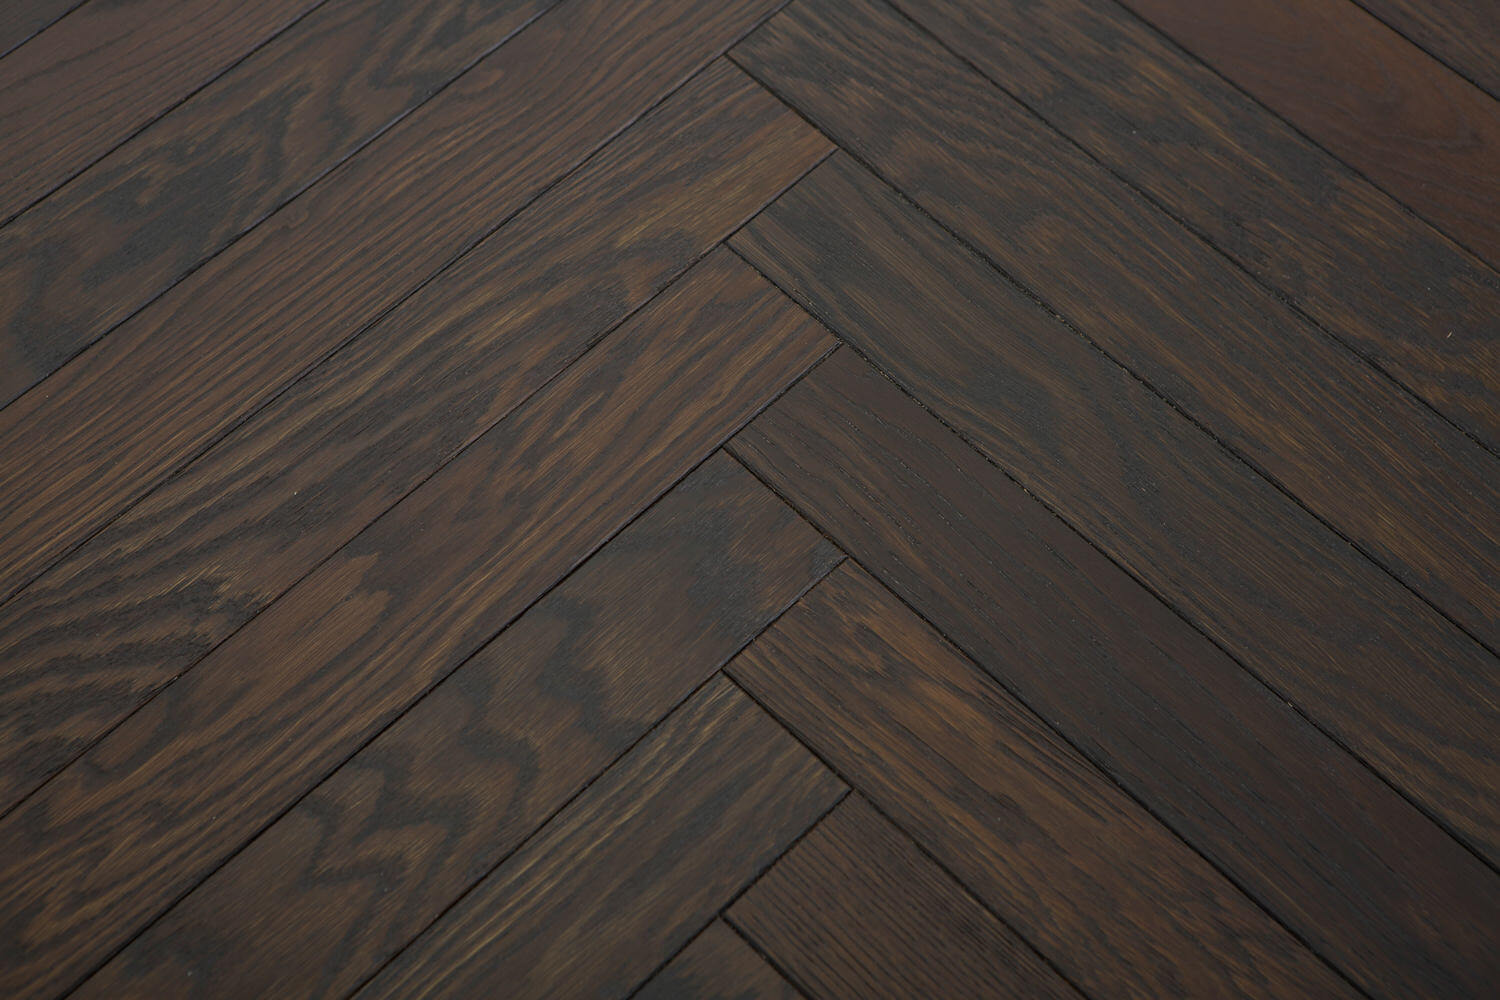 3 Oak Floor Product 30 Day Fumed